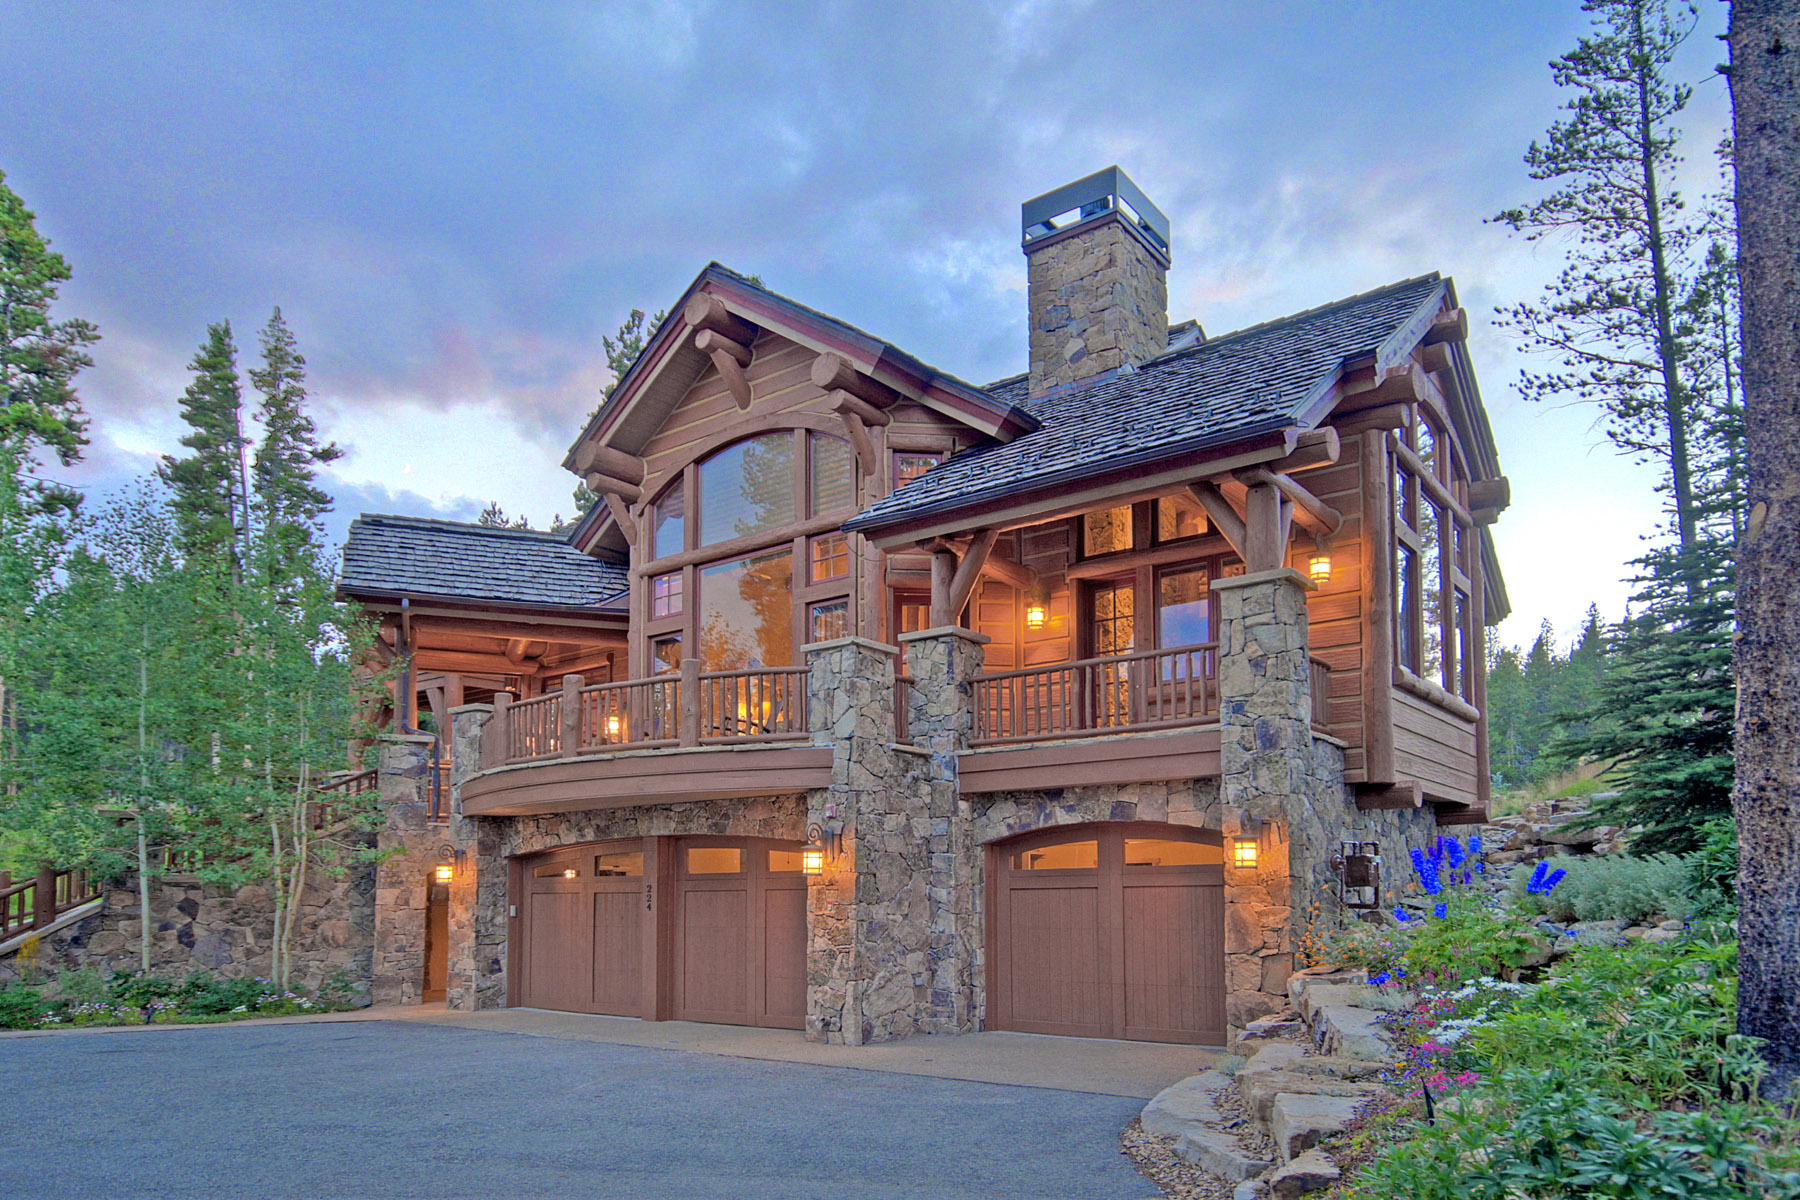 search cabins sale rustichome and log real black all estate homes colorado condos forest for